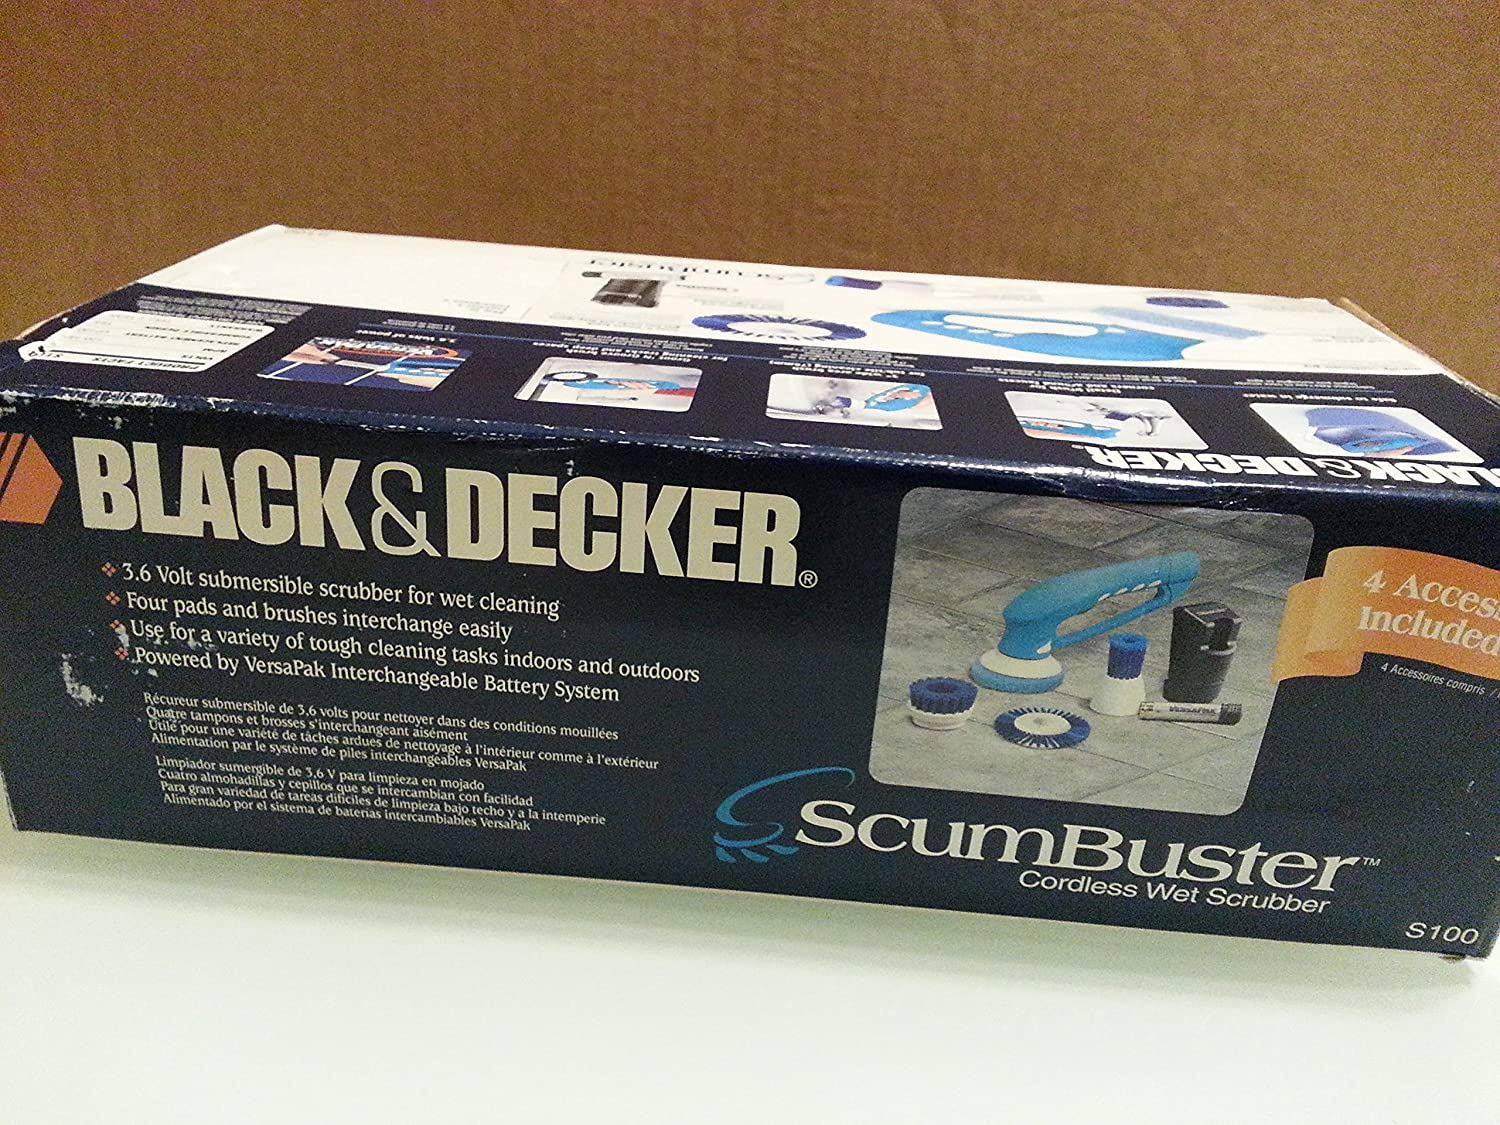 Amazon.com: Black & Decker, ScumBuster Cordless Wet Scrubber, Model S100: Kitchen & Dining